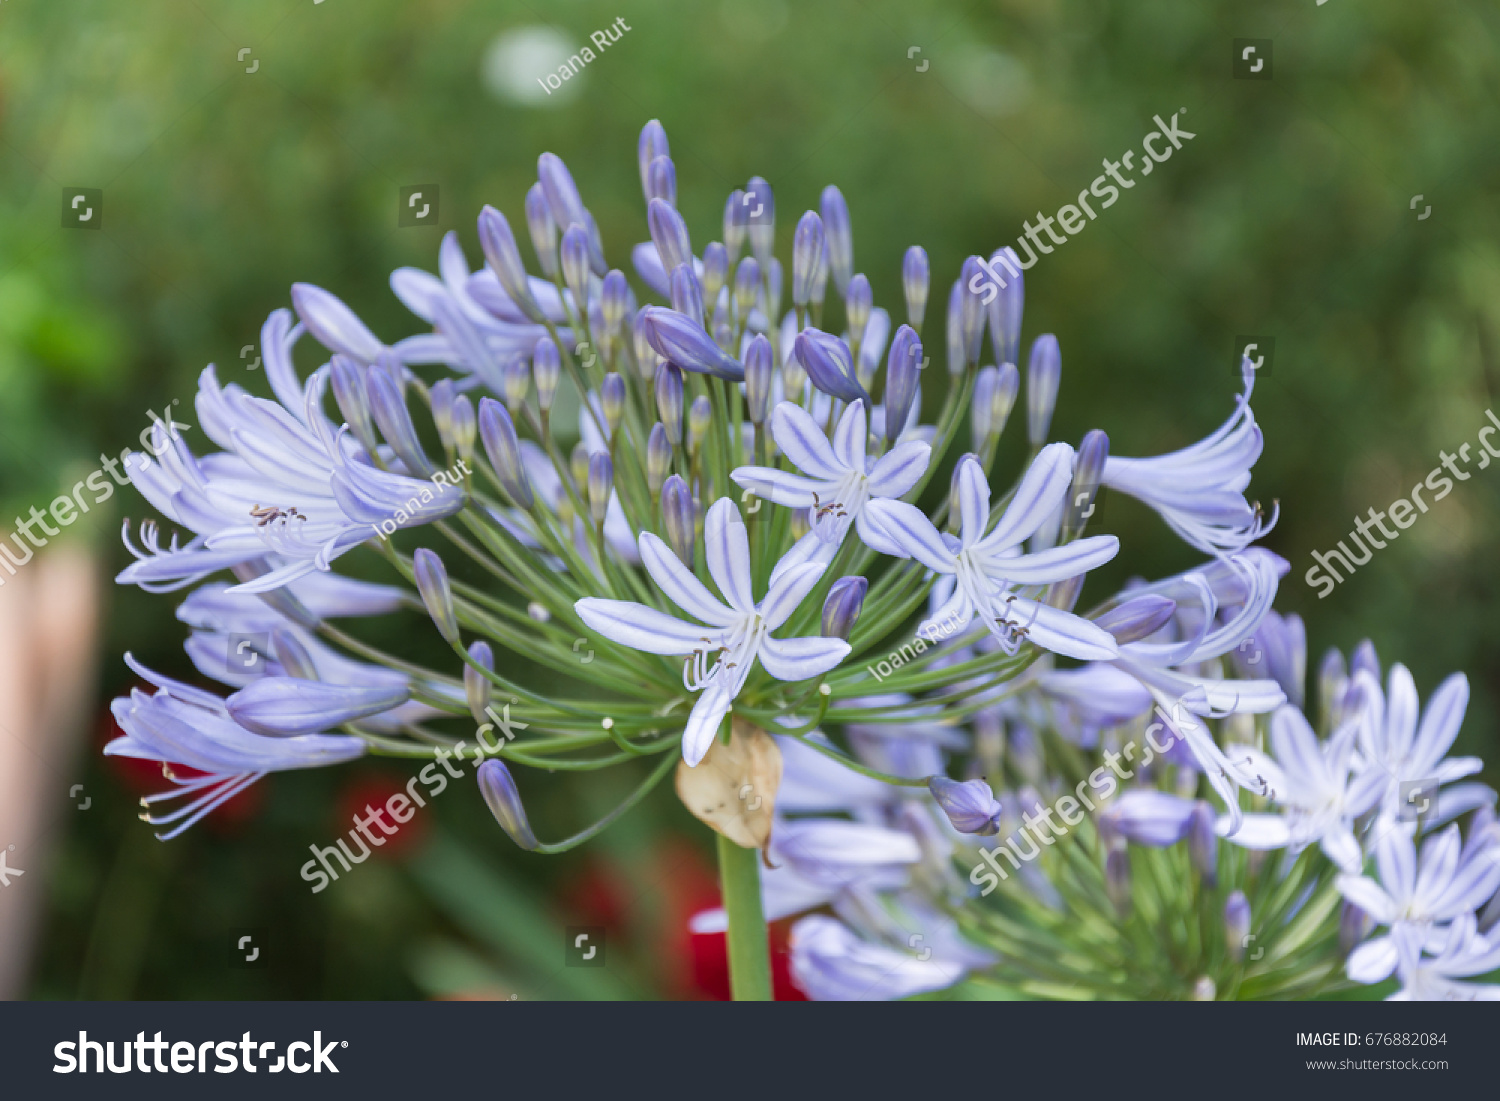 Lily nile agapanthus african lilly bloom stock photo edit now lily of the nile agapanthus african lilly bloom perfect image for blue izmirmasajfo